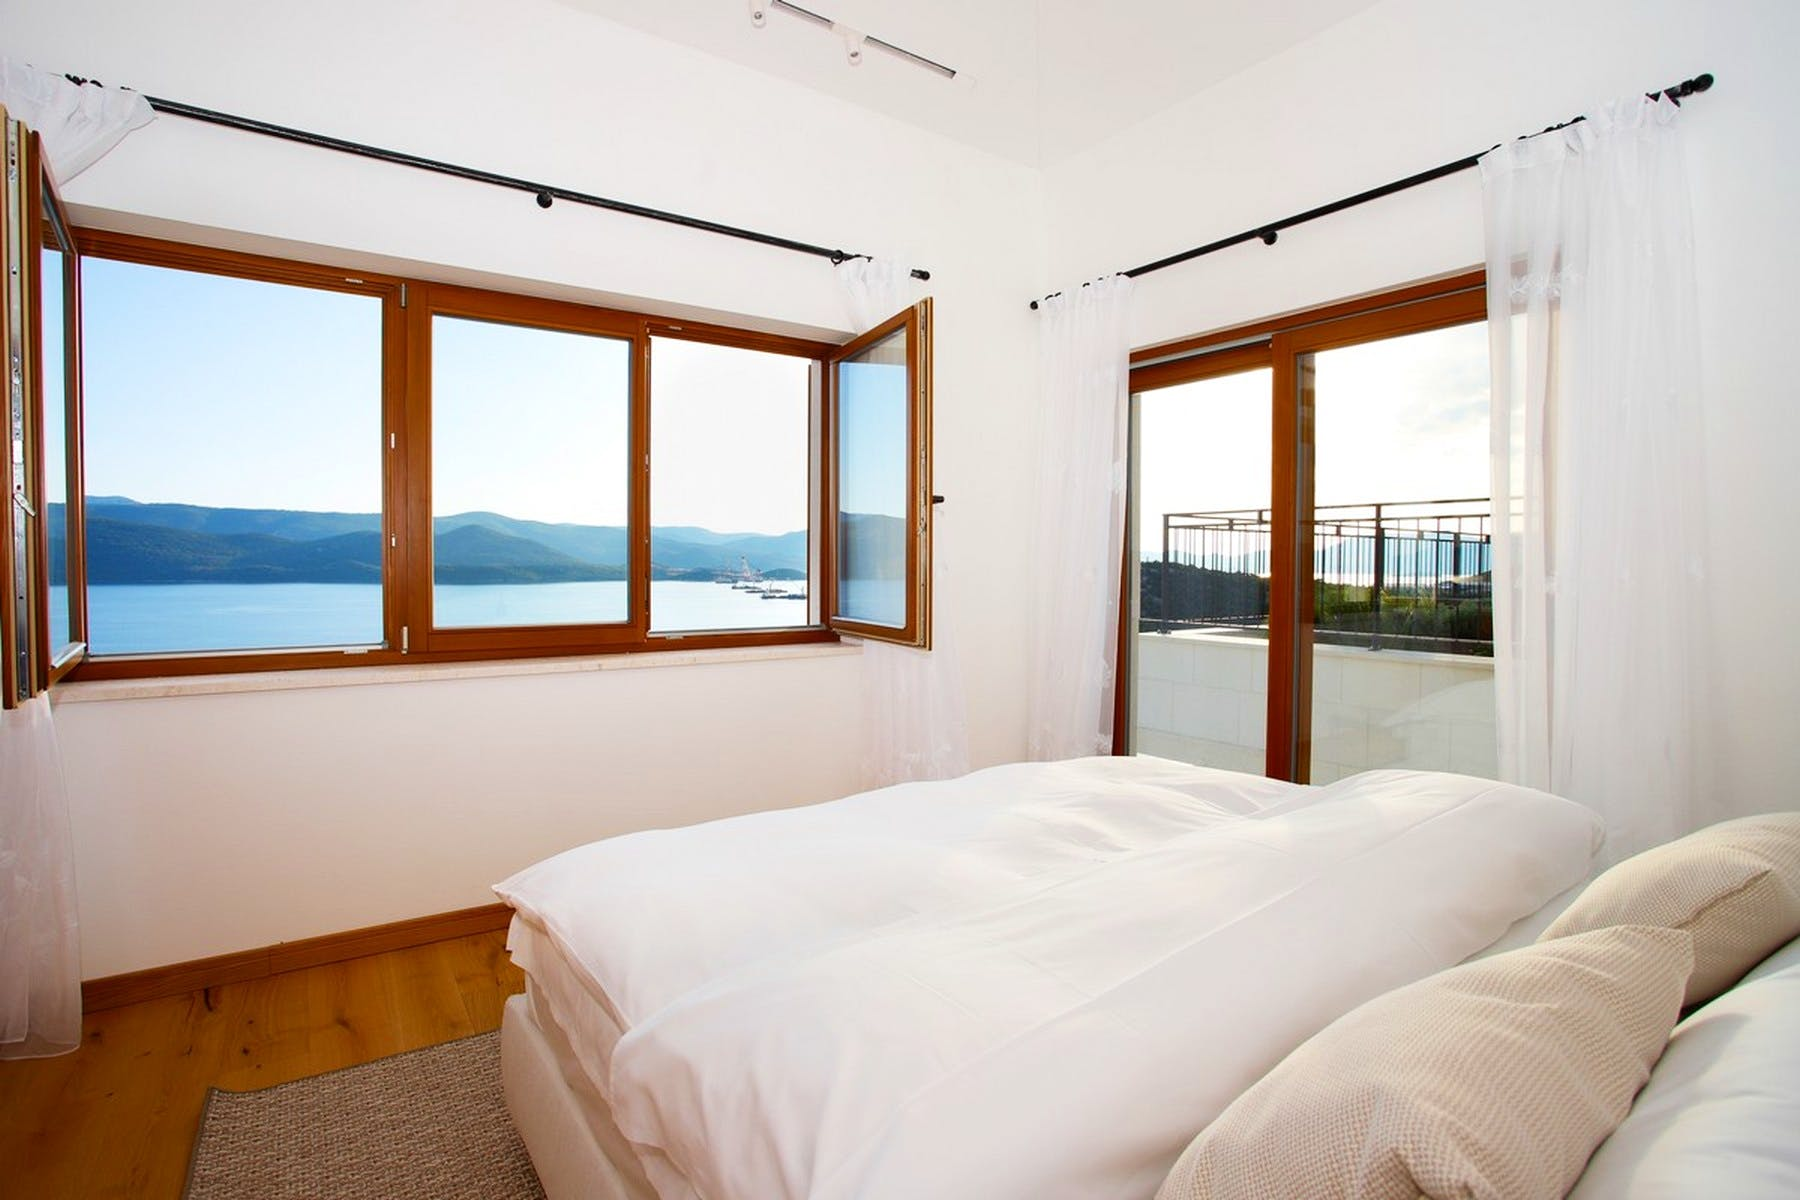 Seaview from the double bedroom